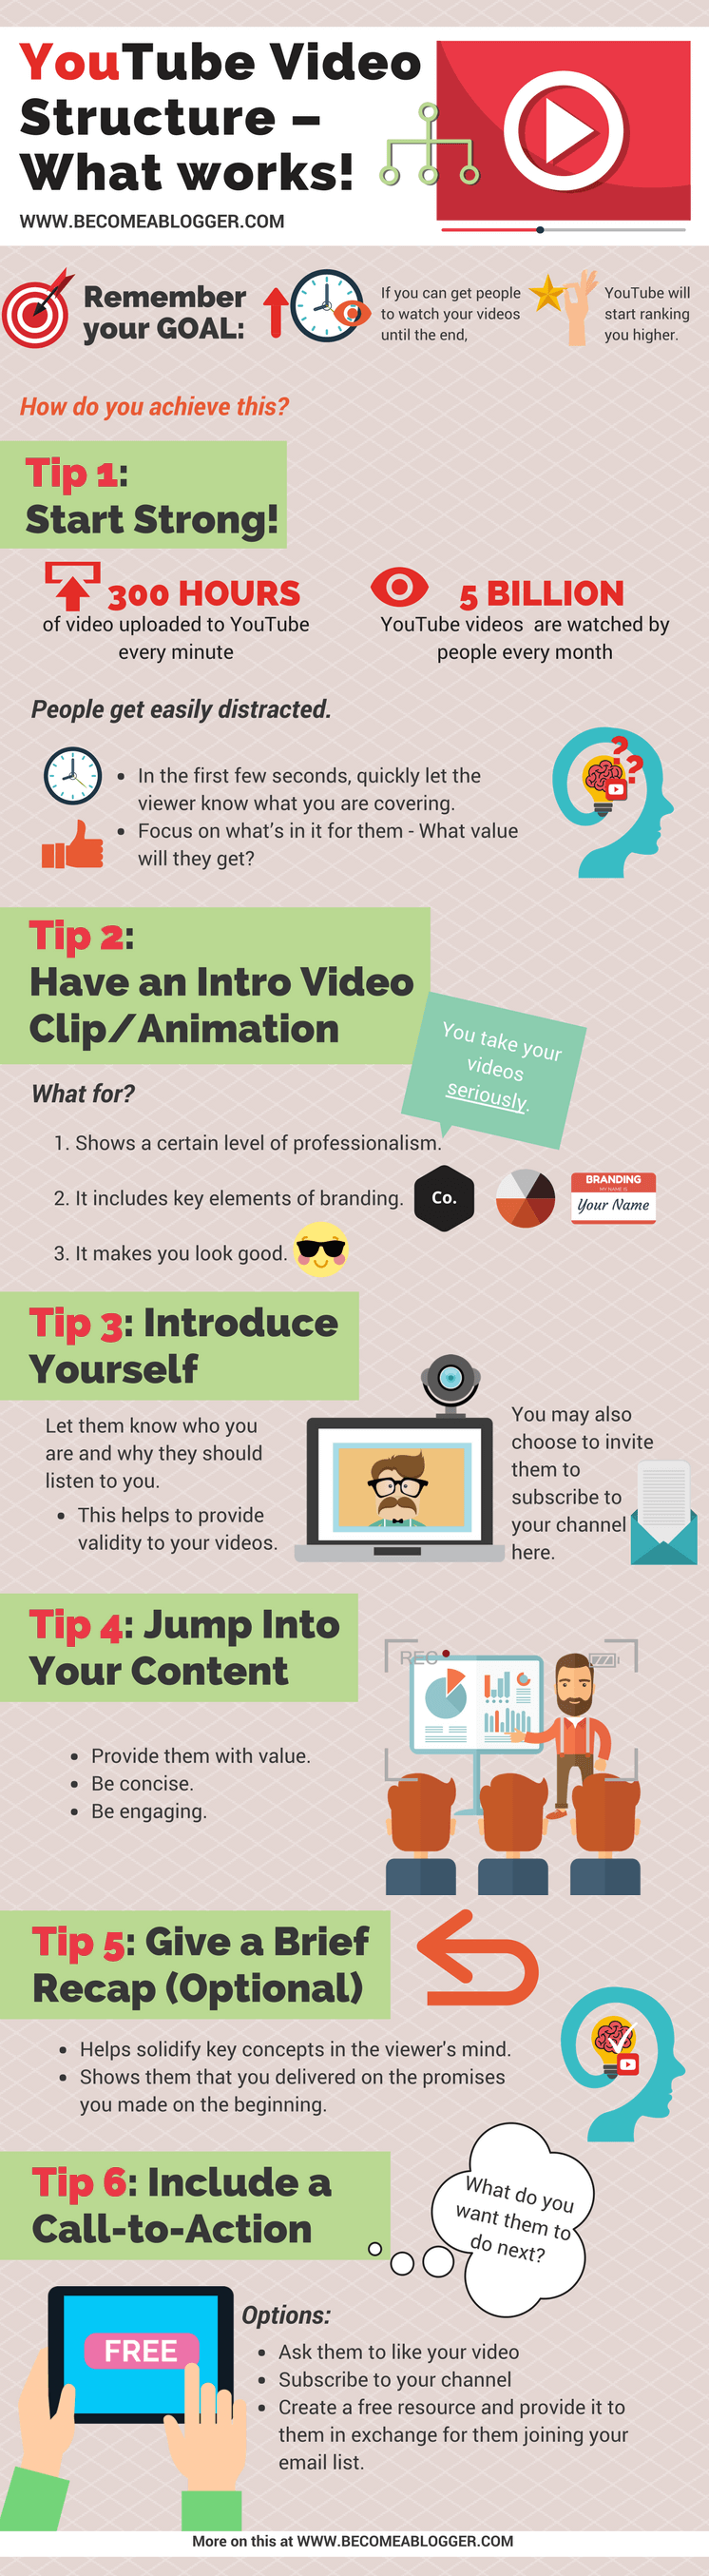 YouTube Video Structure